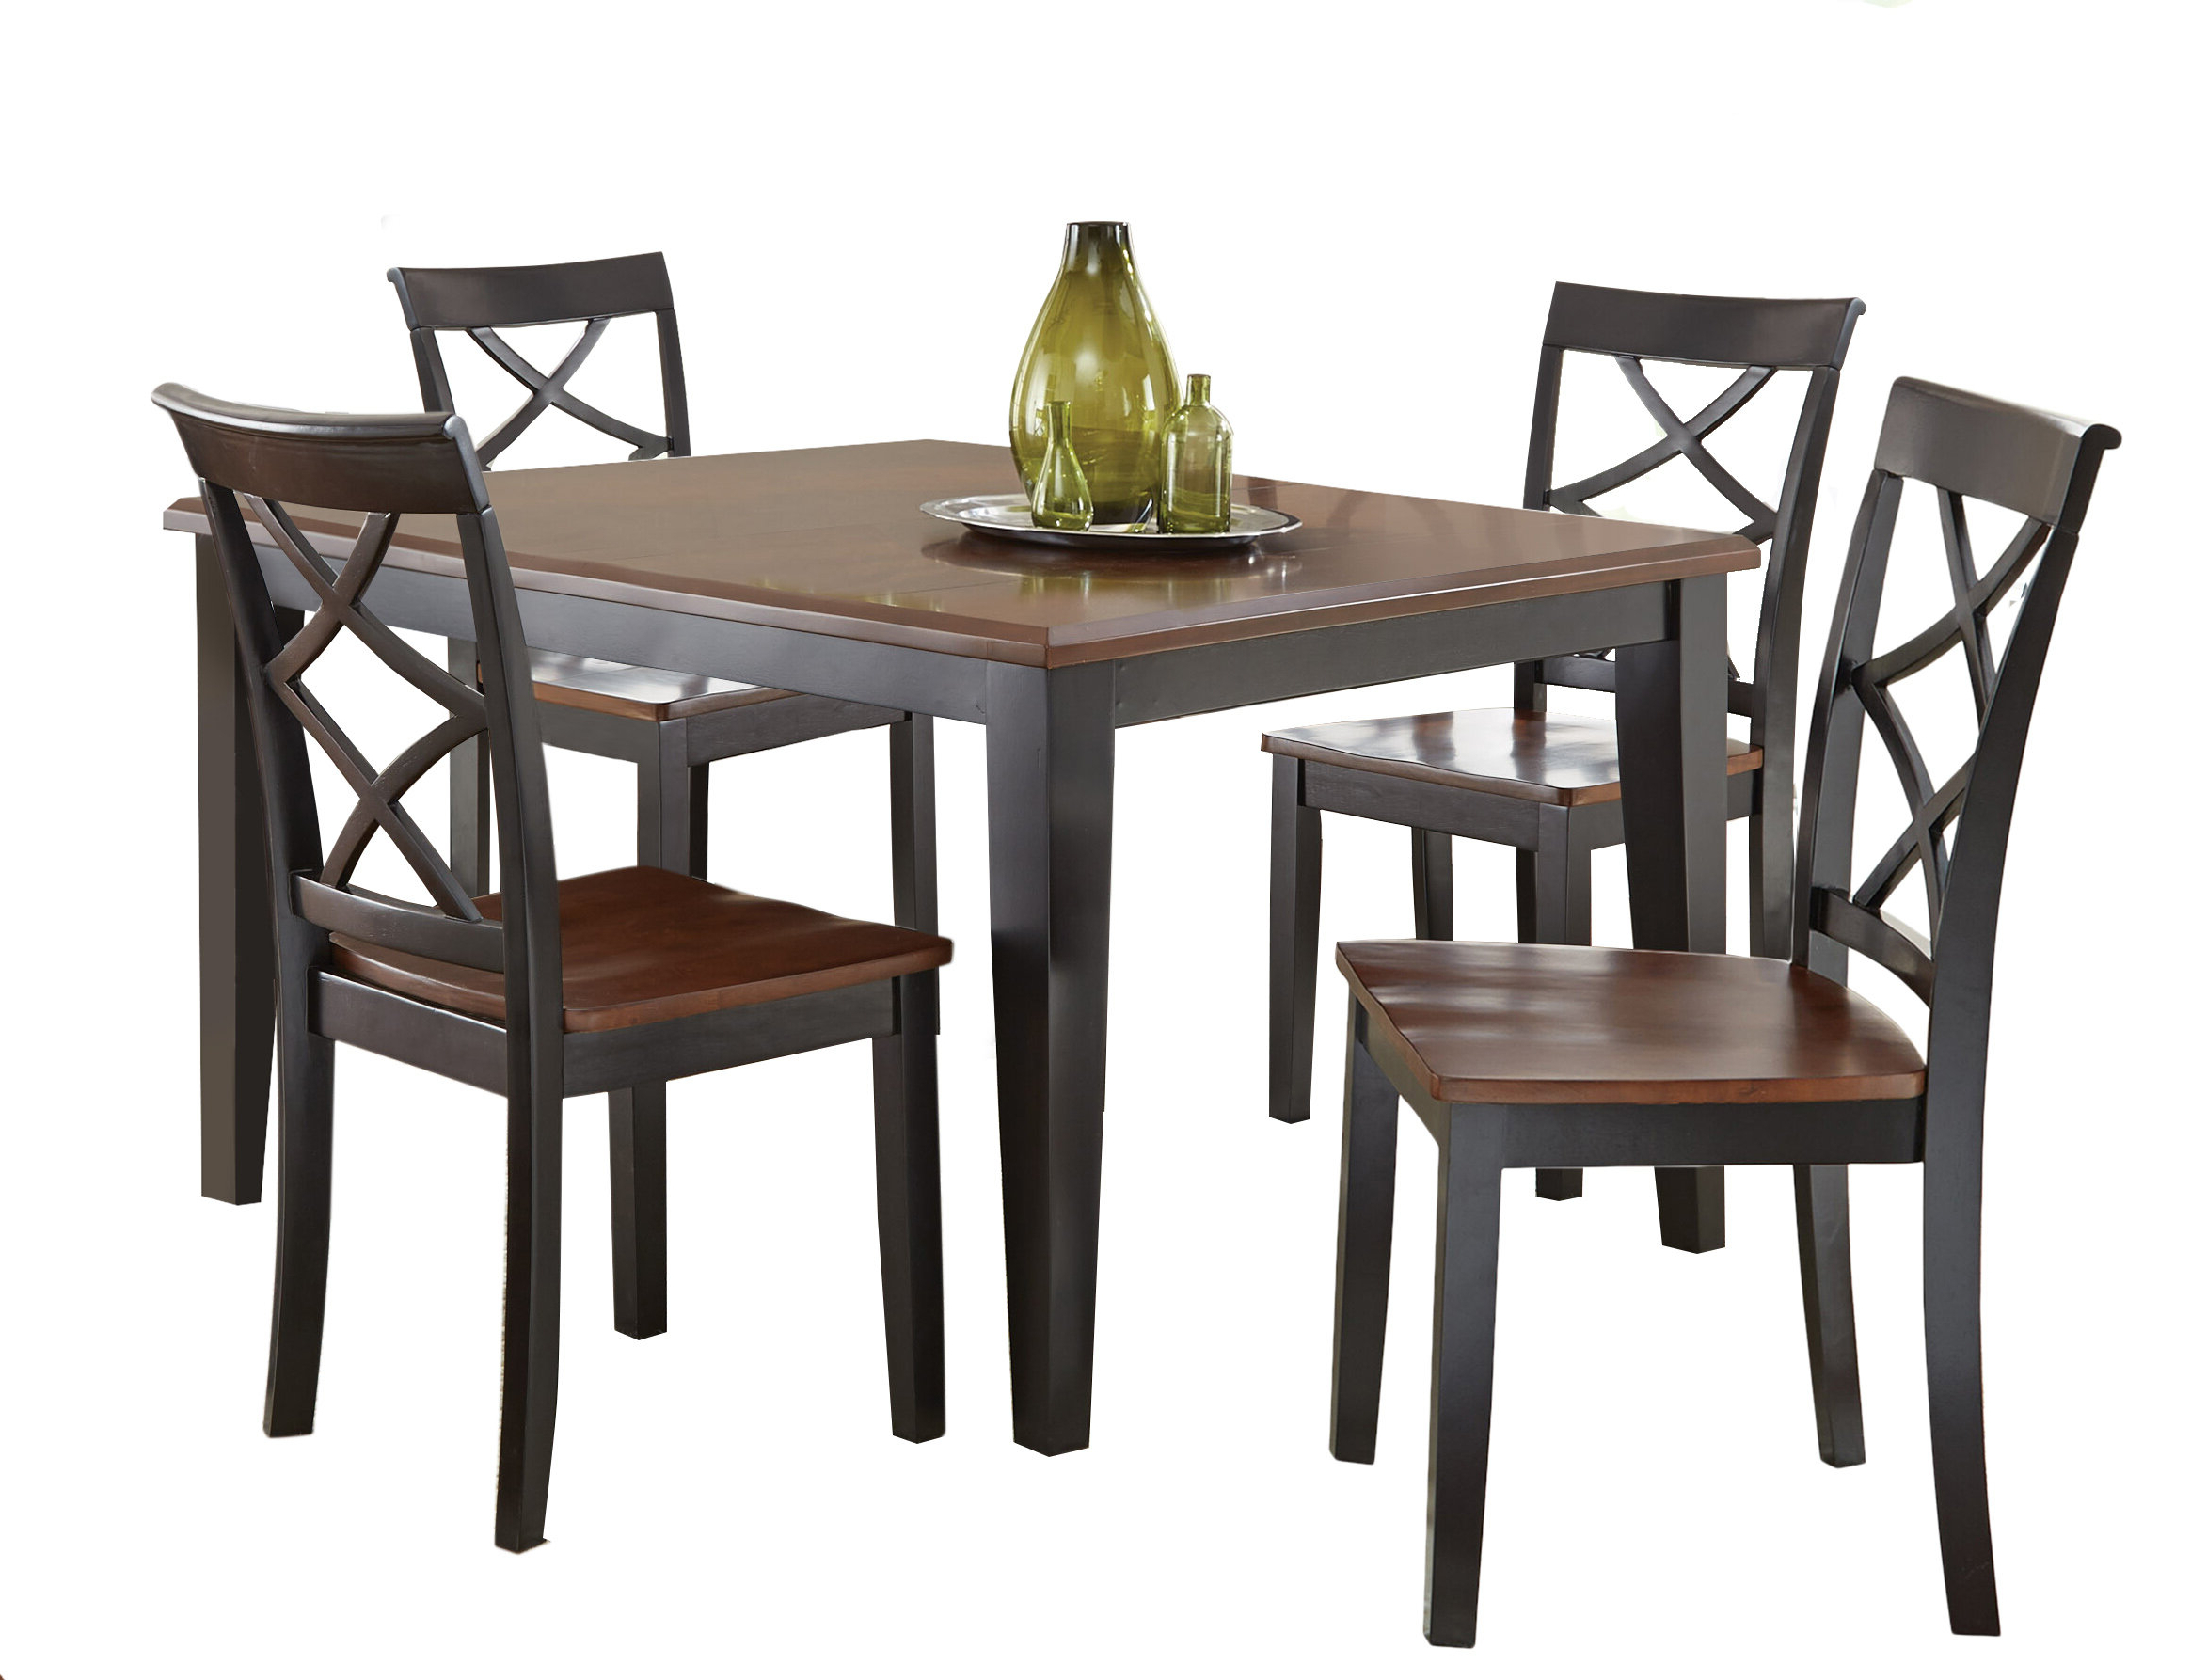 Goodman 5 Piece Solid Wood Dining Sets (Set Of 5) Intended For Most Up To Date Charlton Home Ari 5 Piece Drop Leaf Dining Set & Reviews (View 7 of 25)